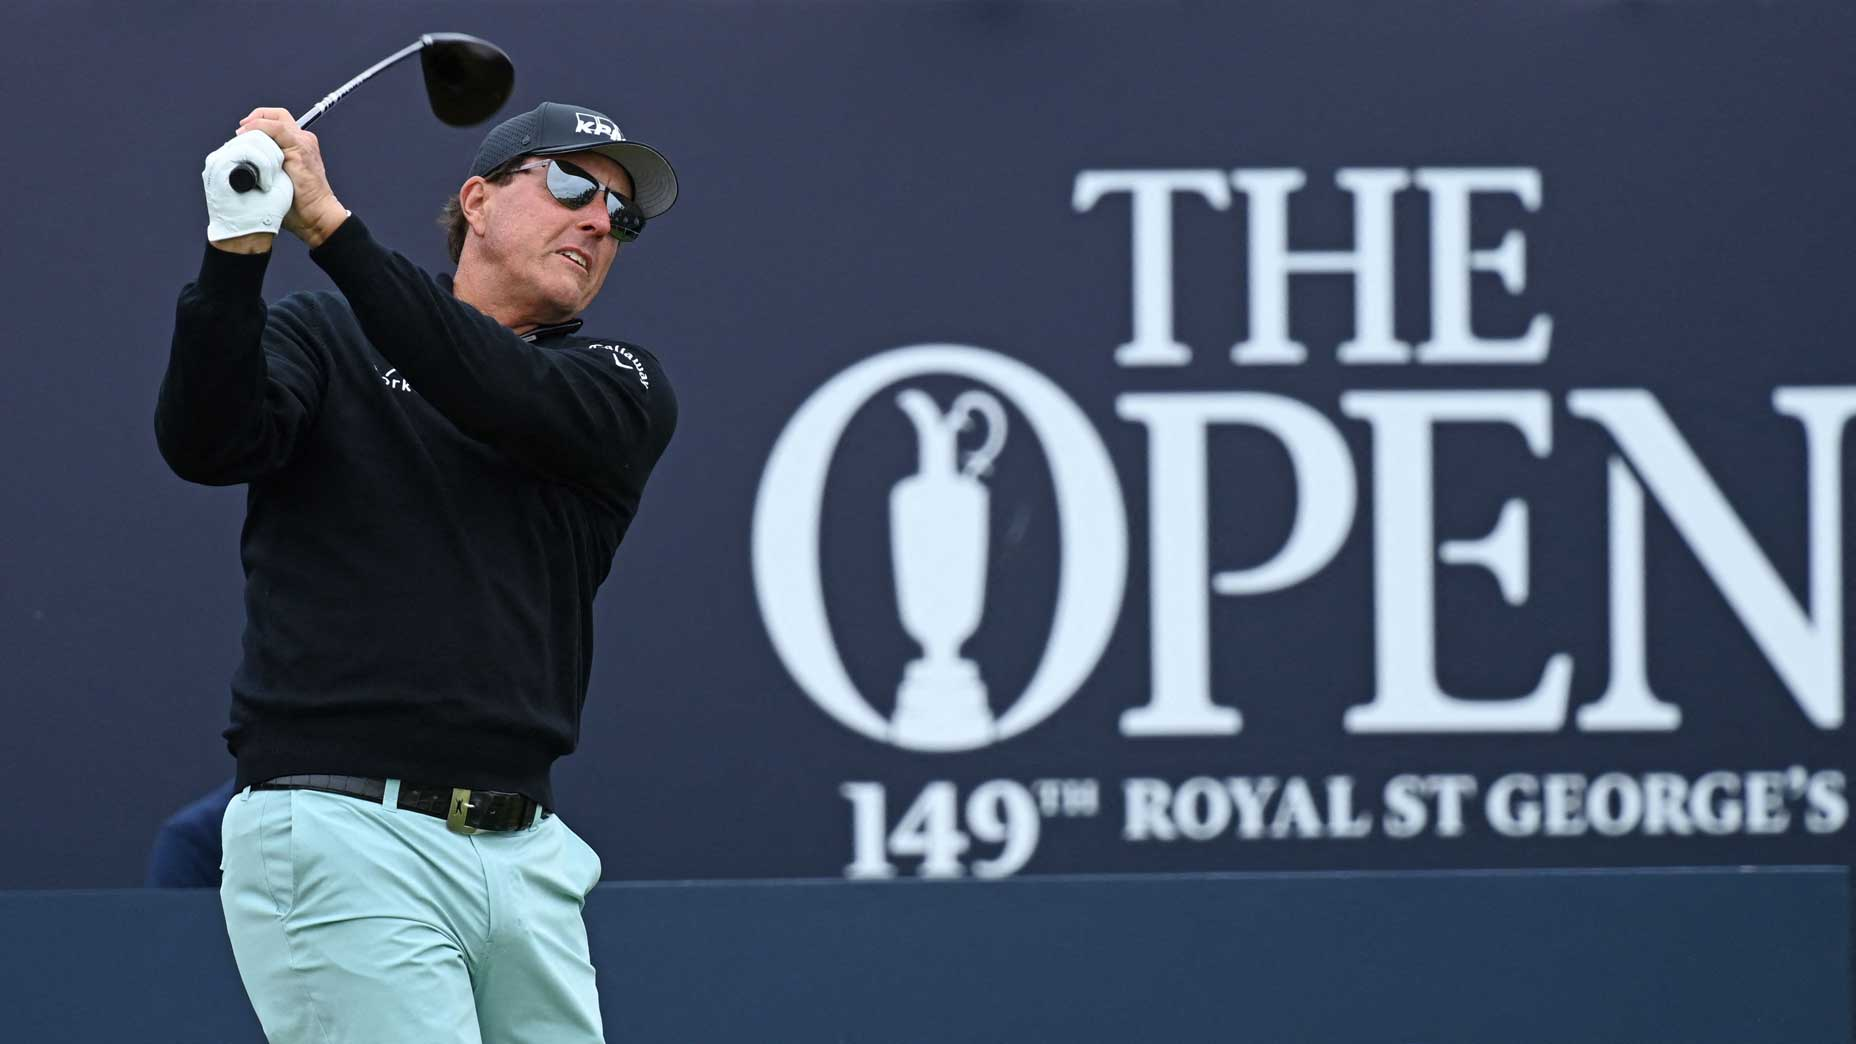 2021 British Open streaming: How to watch the British Open online